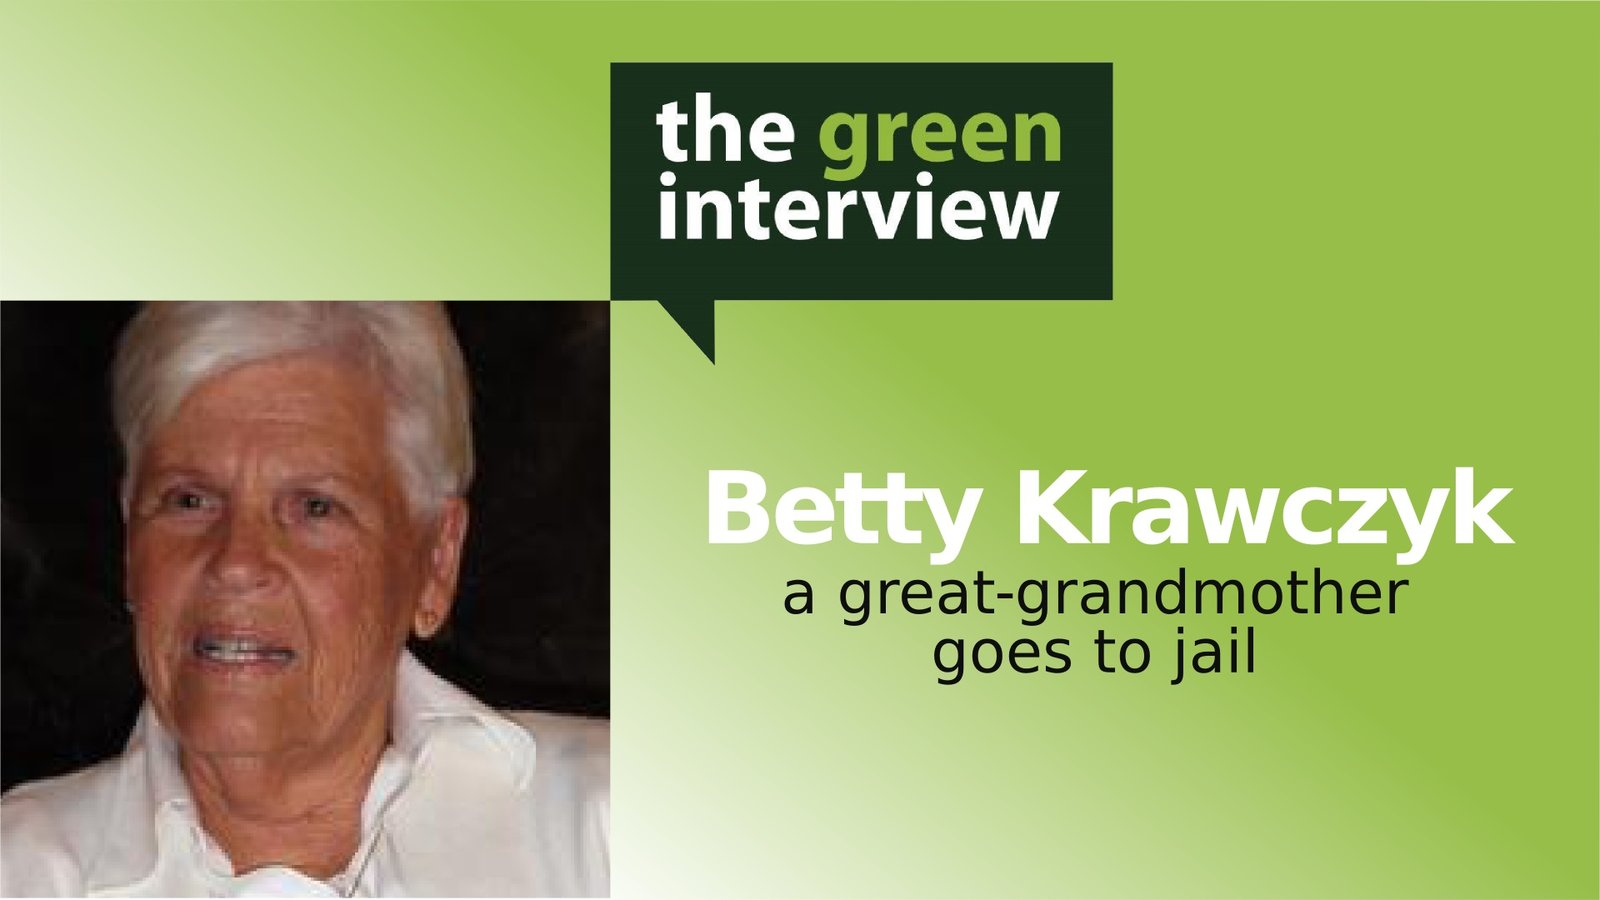 Betty Krawczyk: A Great Grandmother Goes to Jail